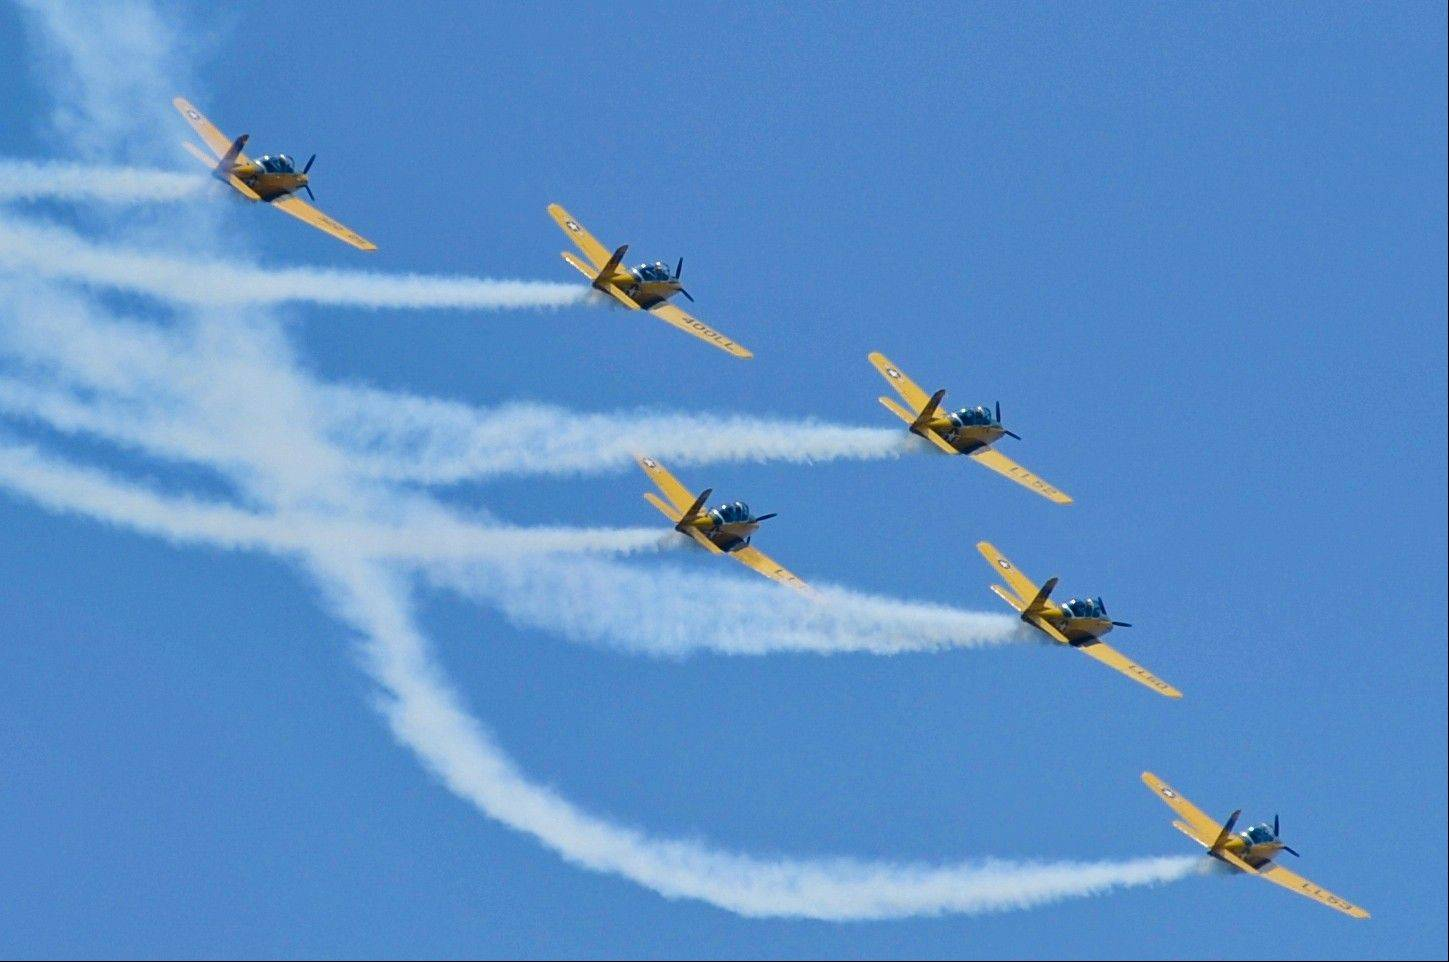 The Lima Lima Flight Team will perform maneuvers over Lake Michigan at the Chicago Air & Water Show this weekend.